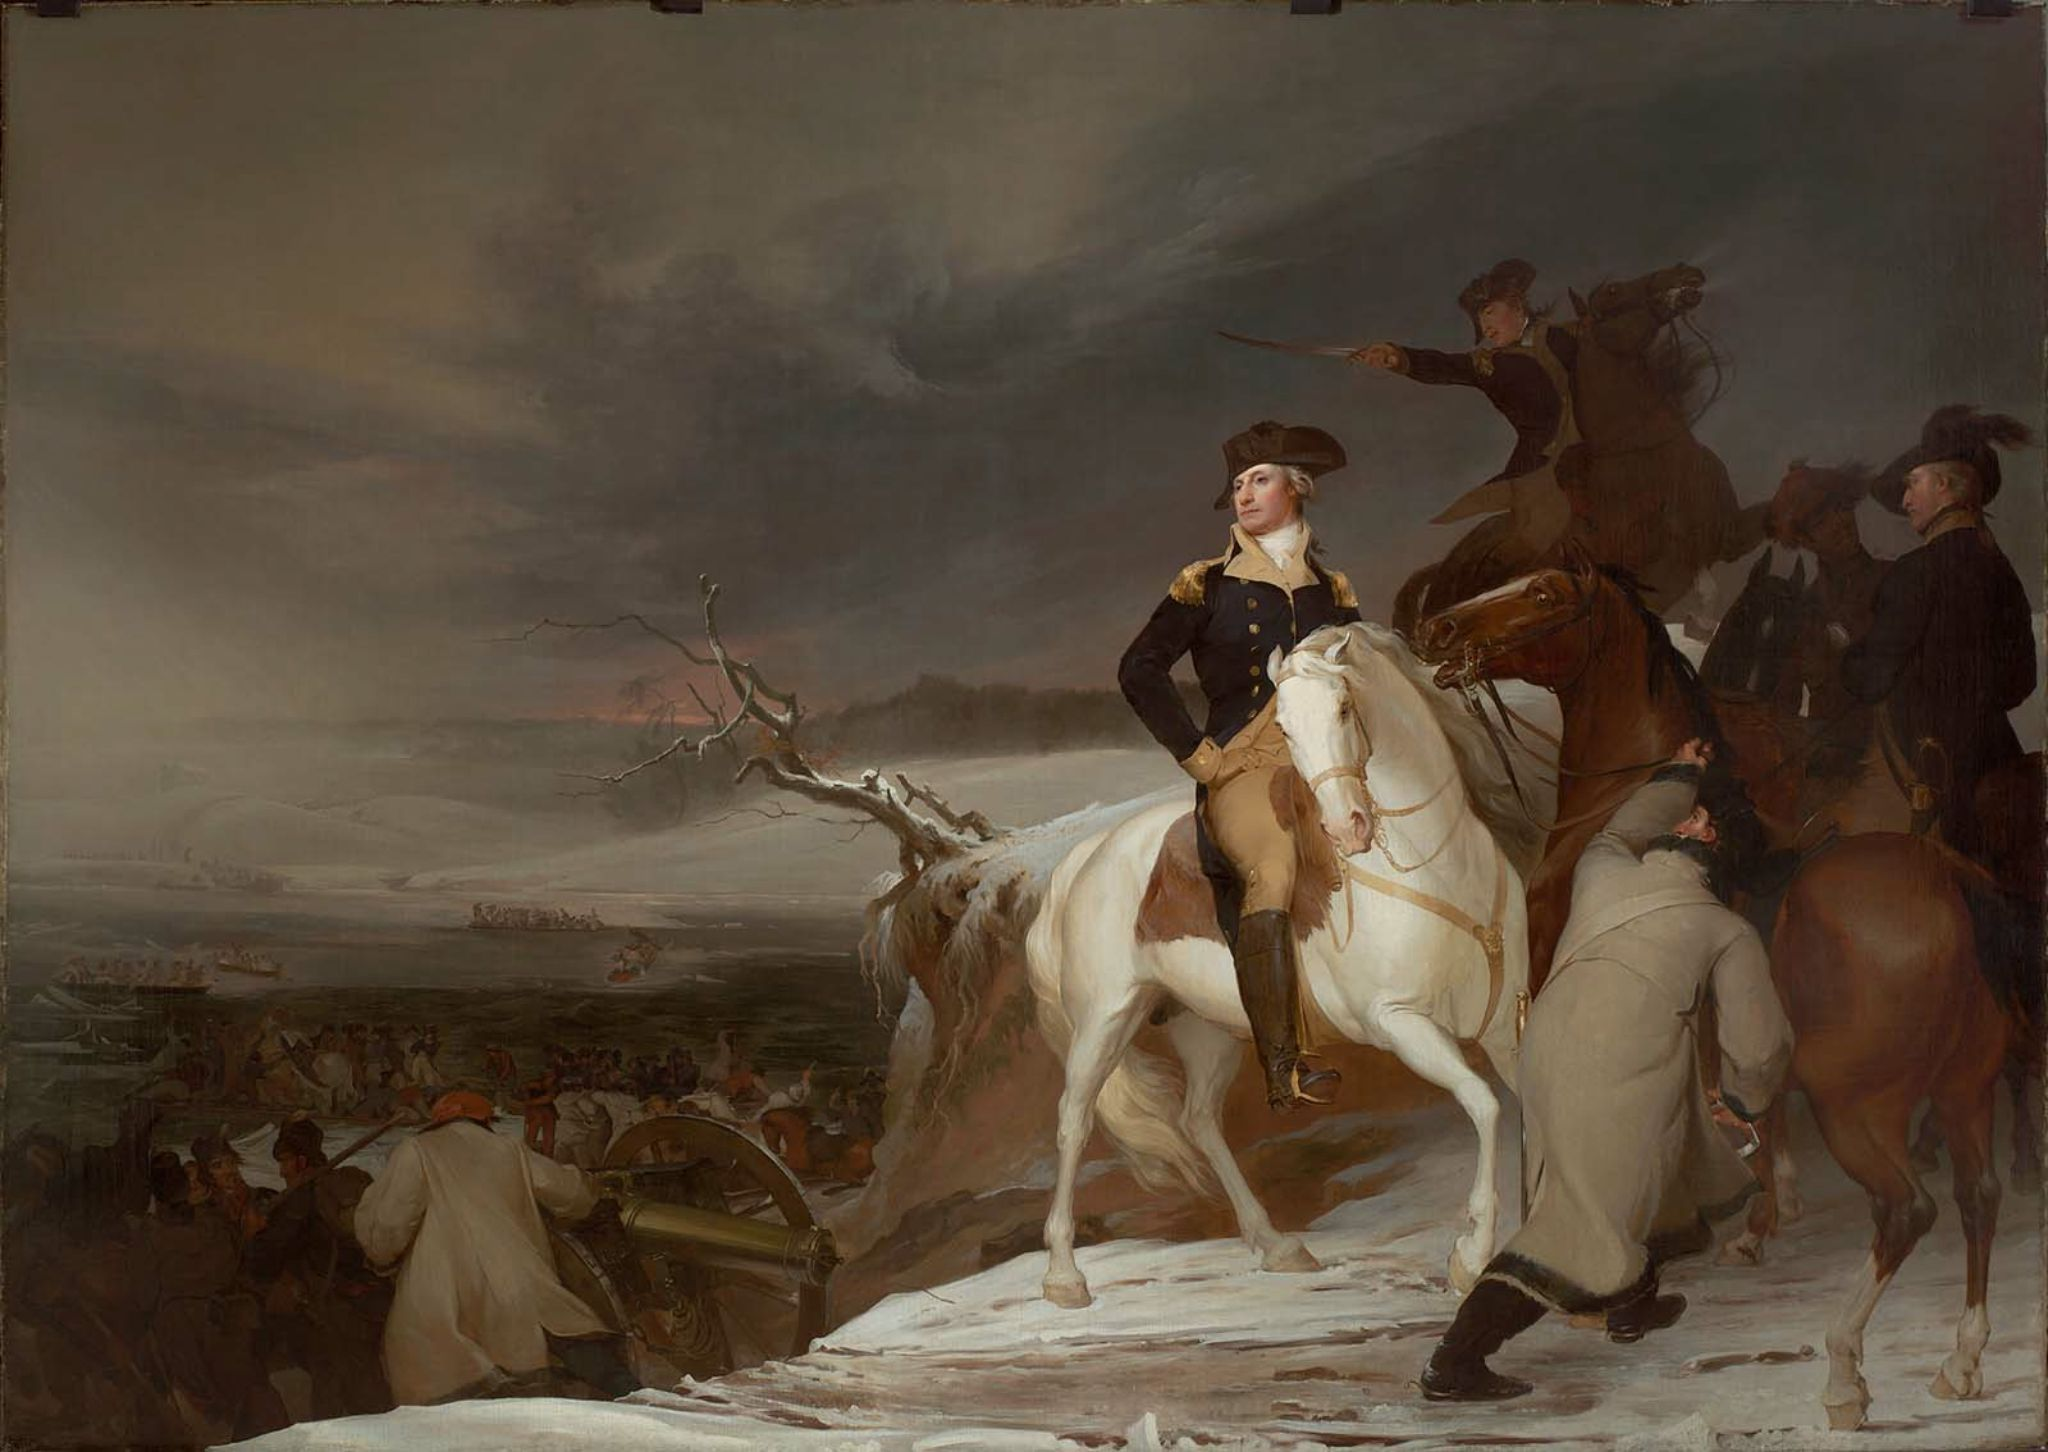 Passage of the Delaware, by Thomas Sully (1819). Now in the Boston Museum of Fine Arts.